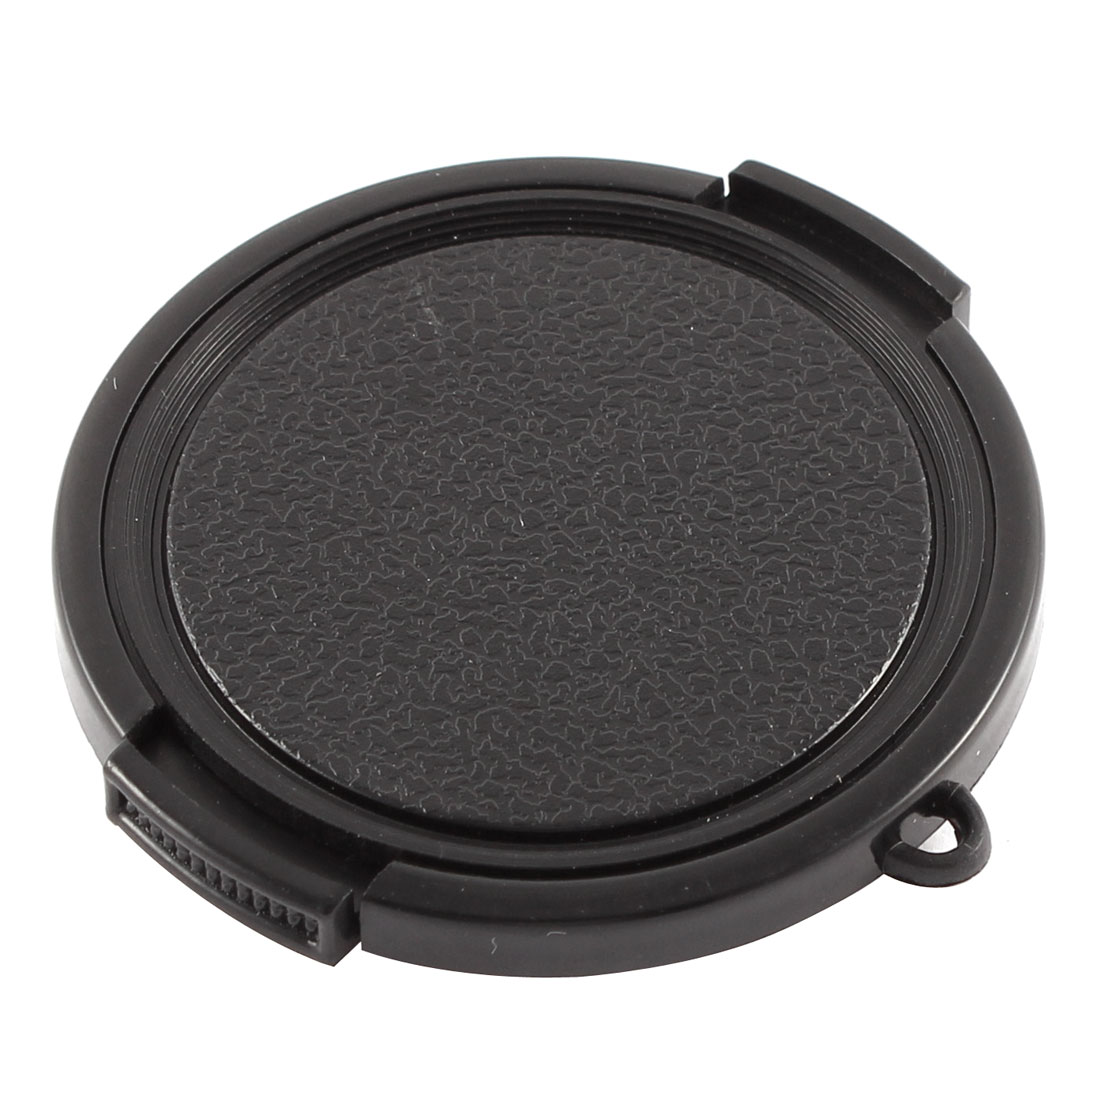 Black Plastic Front Cover Protector Digital Camera Lens Cap 52mm Diameter